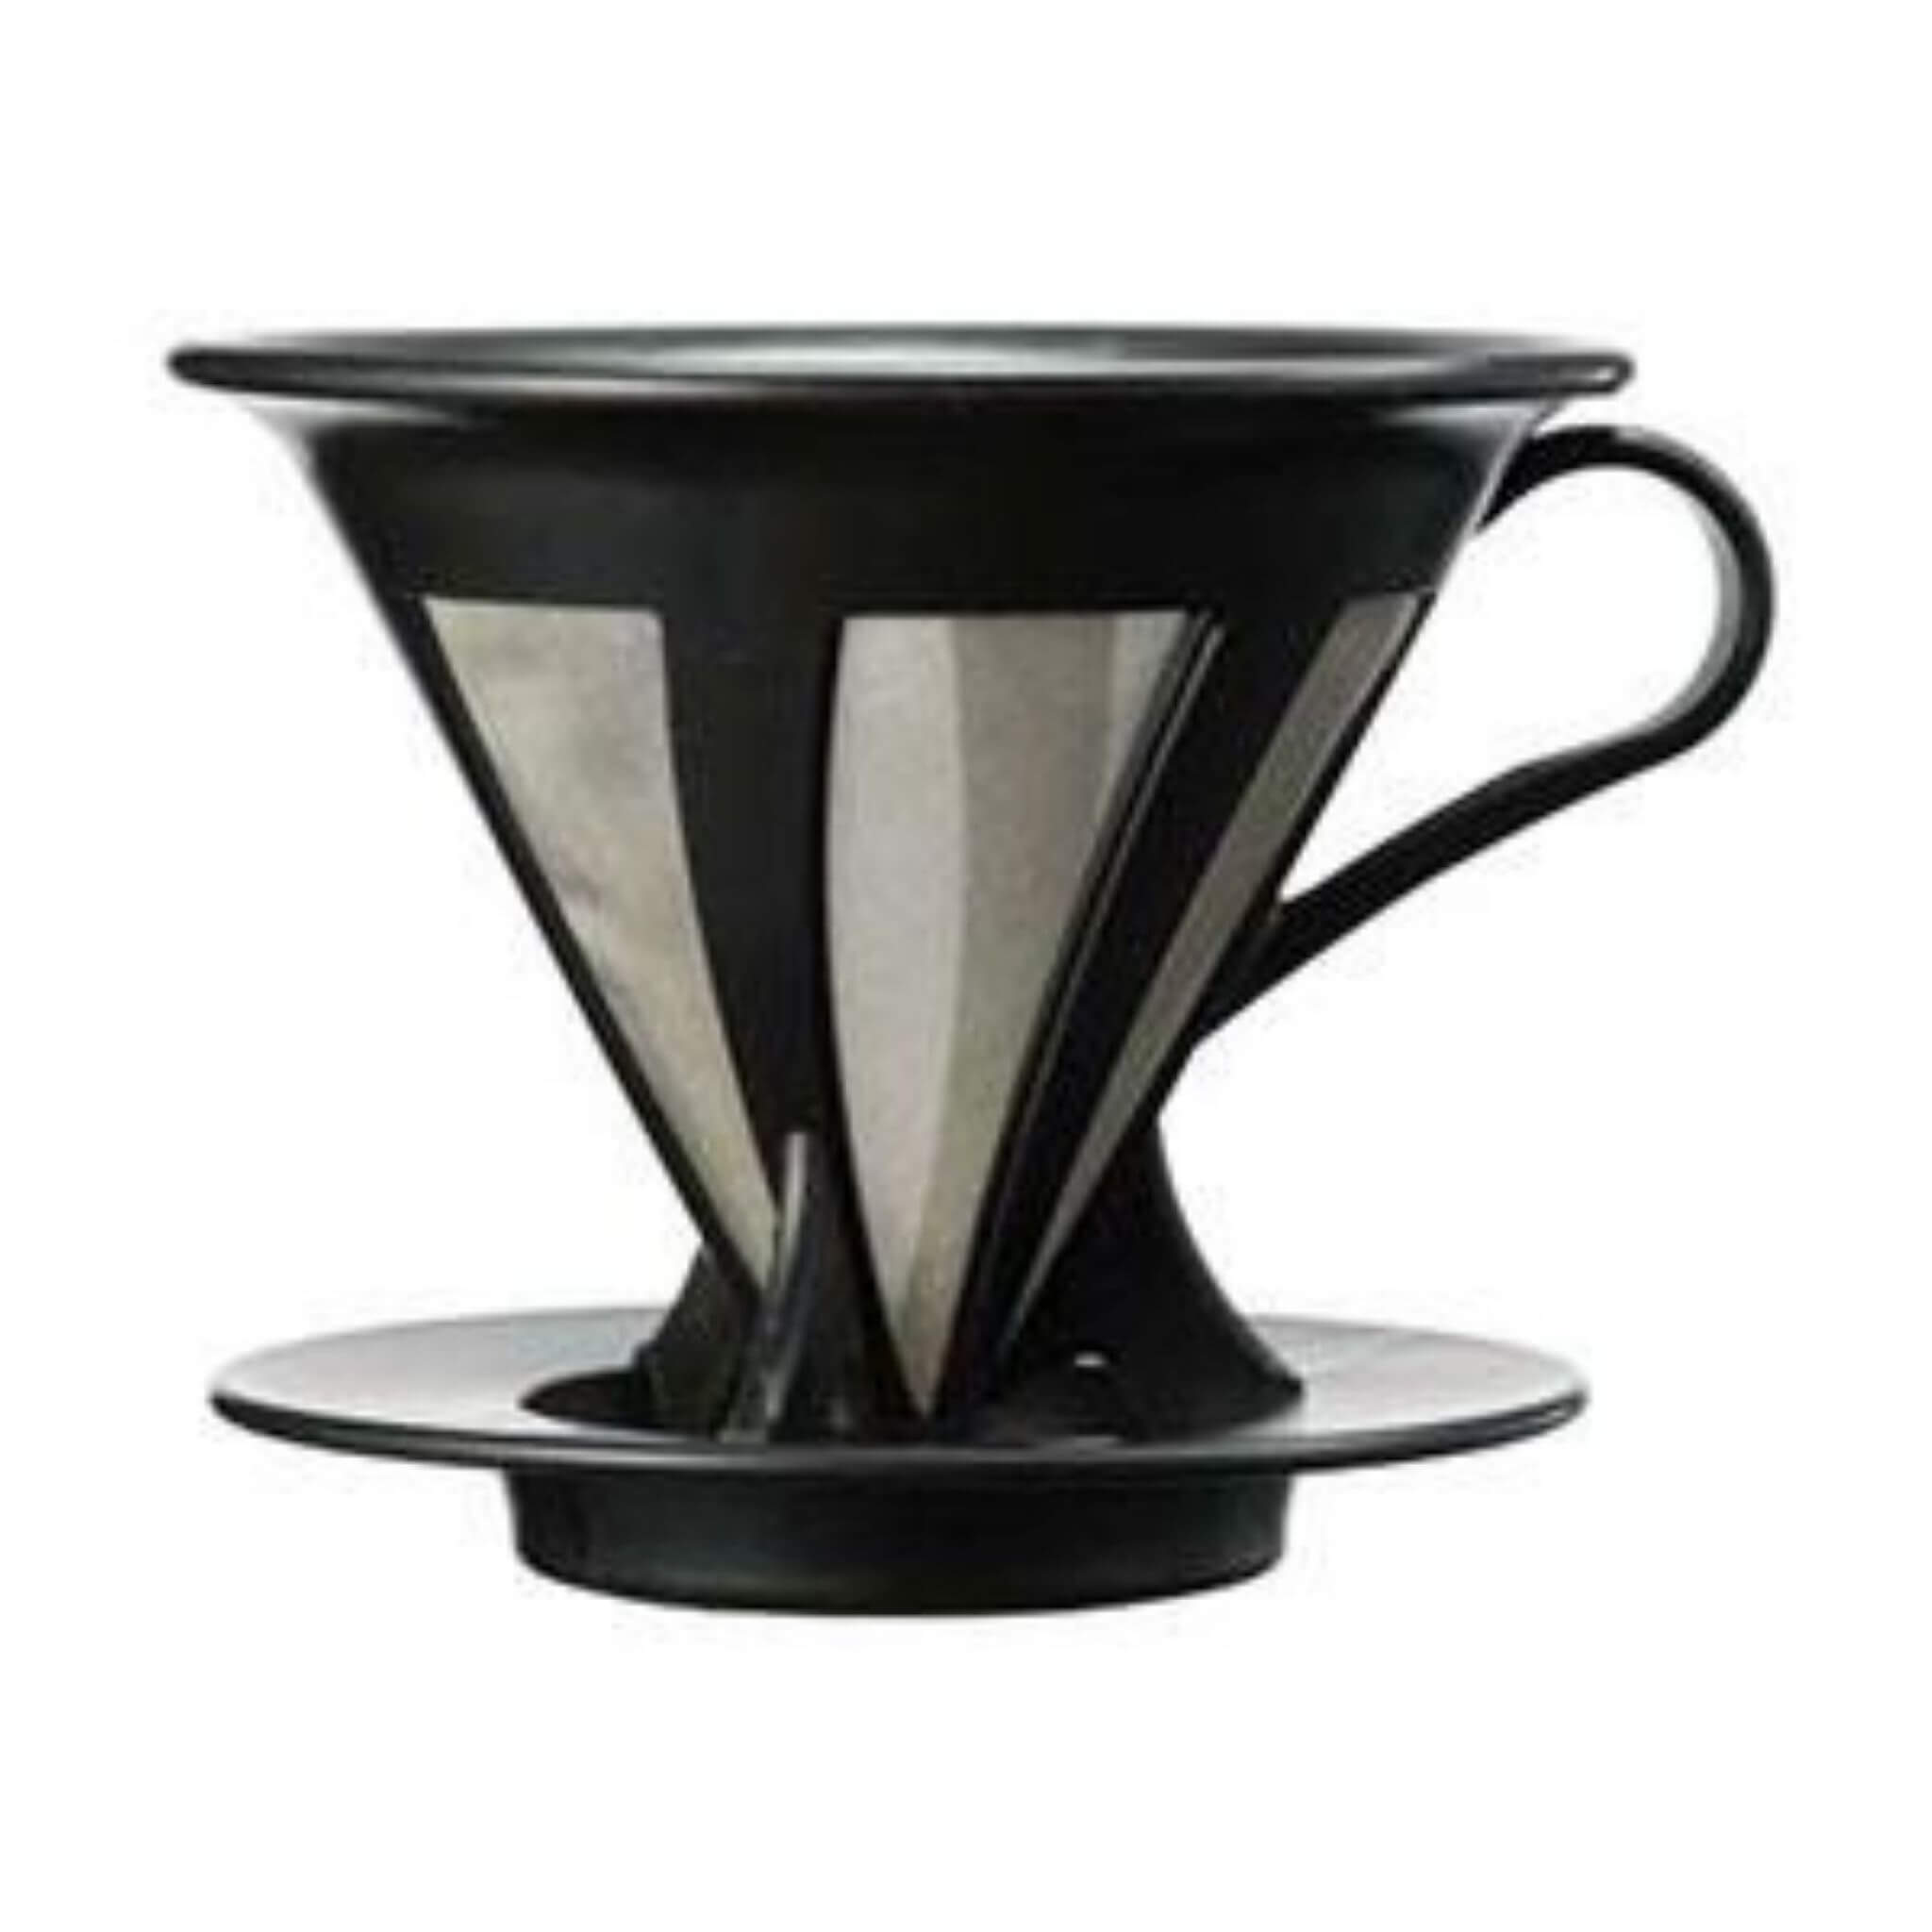 Front VIew Of Hario Mesh Pour Over Coffee Maker